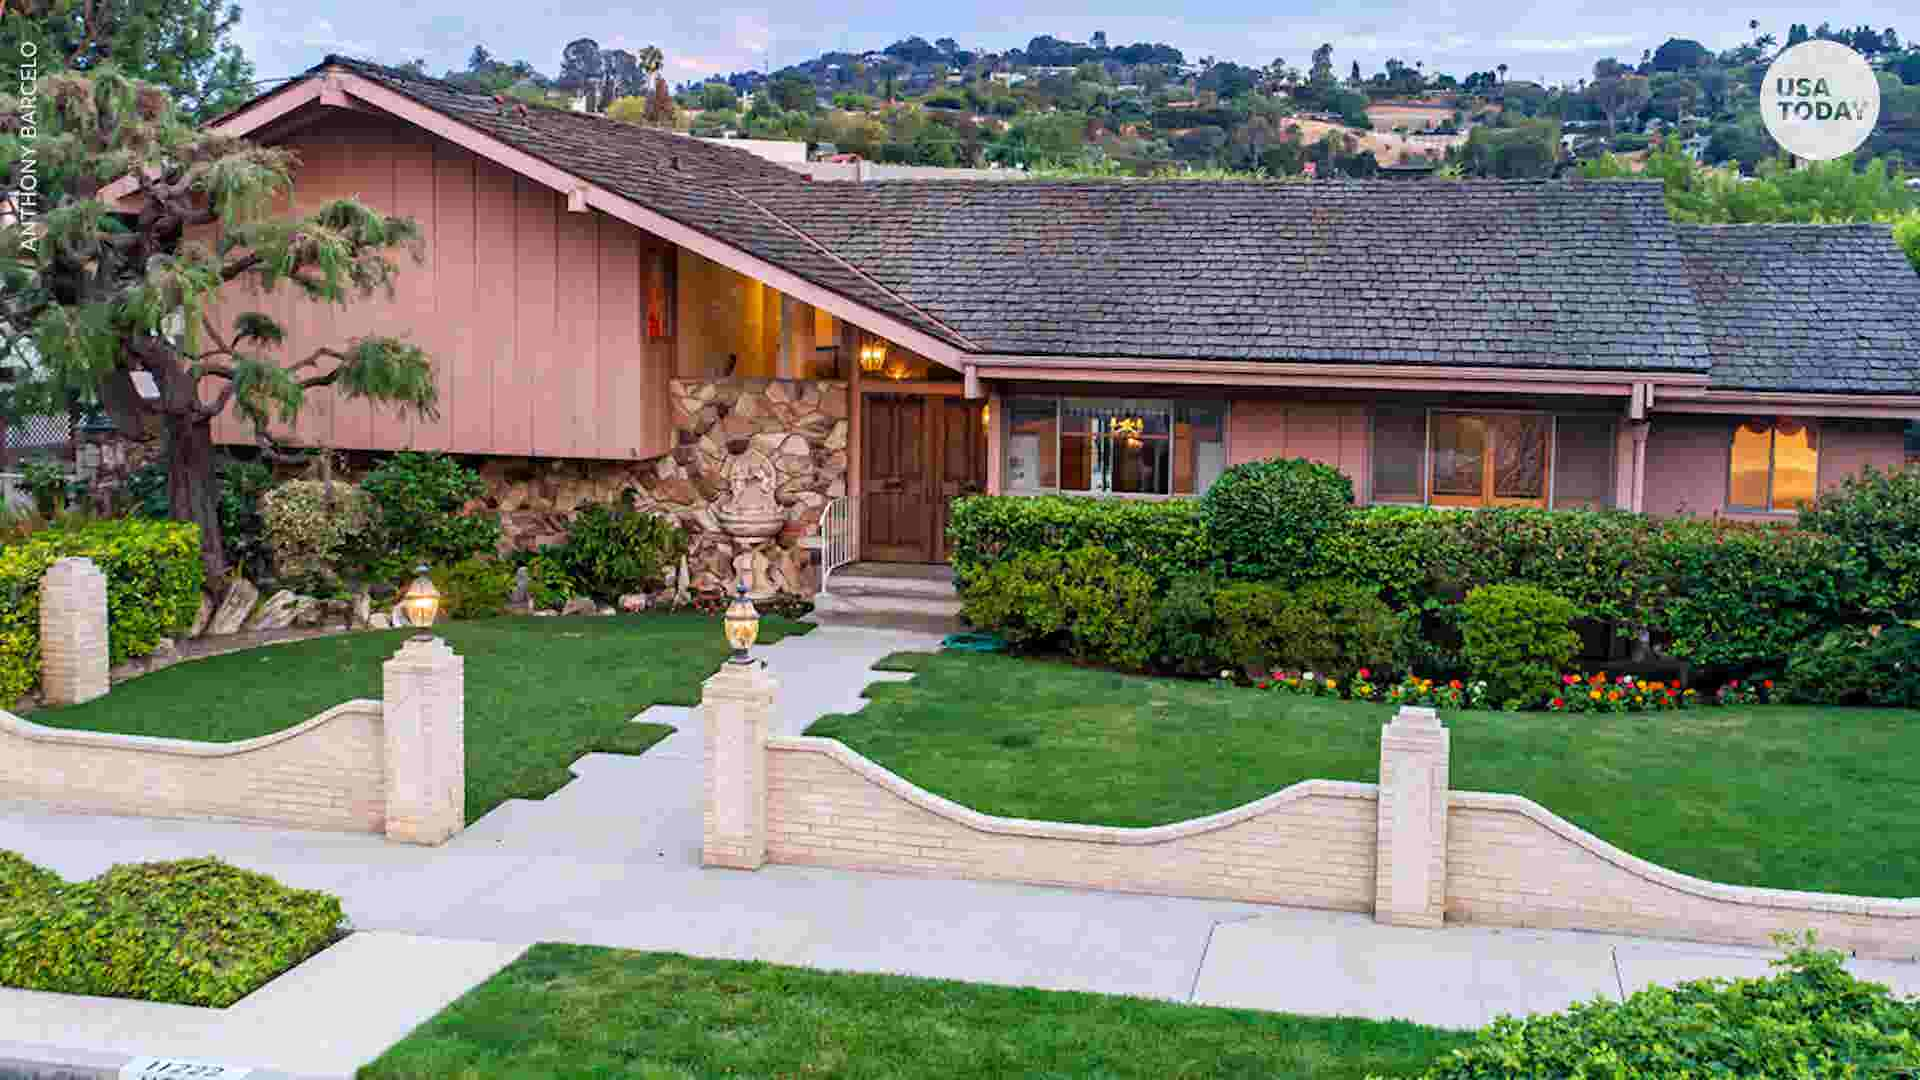 'The Brady Bunch' house is for sale and making us nostalgic